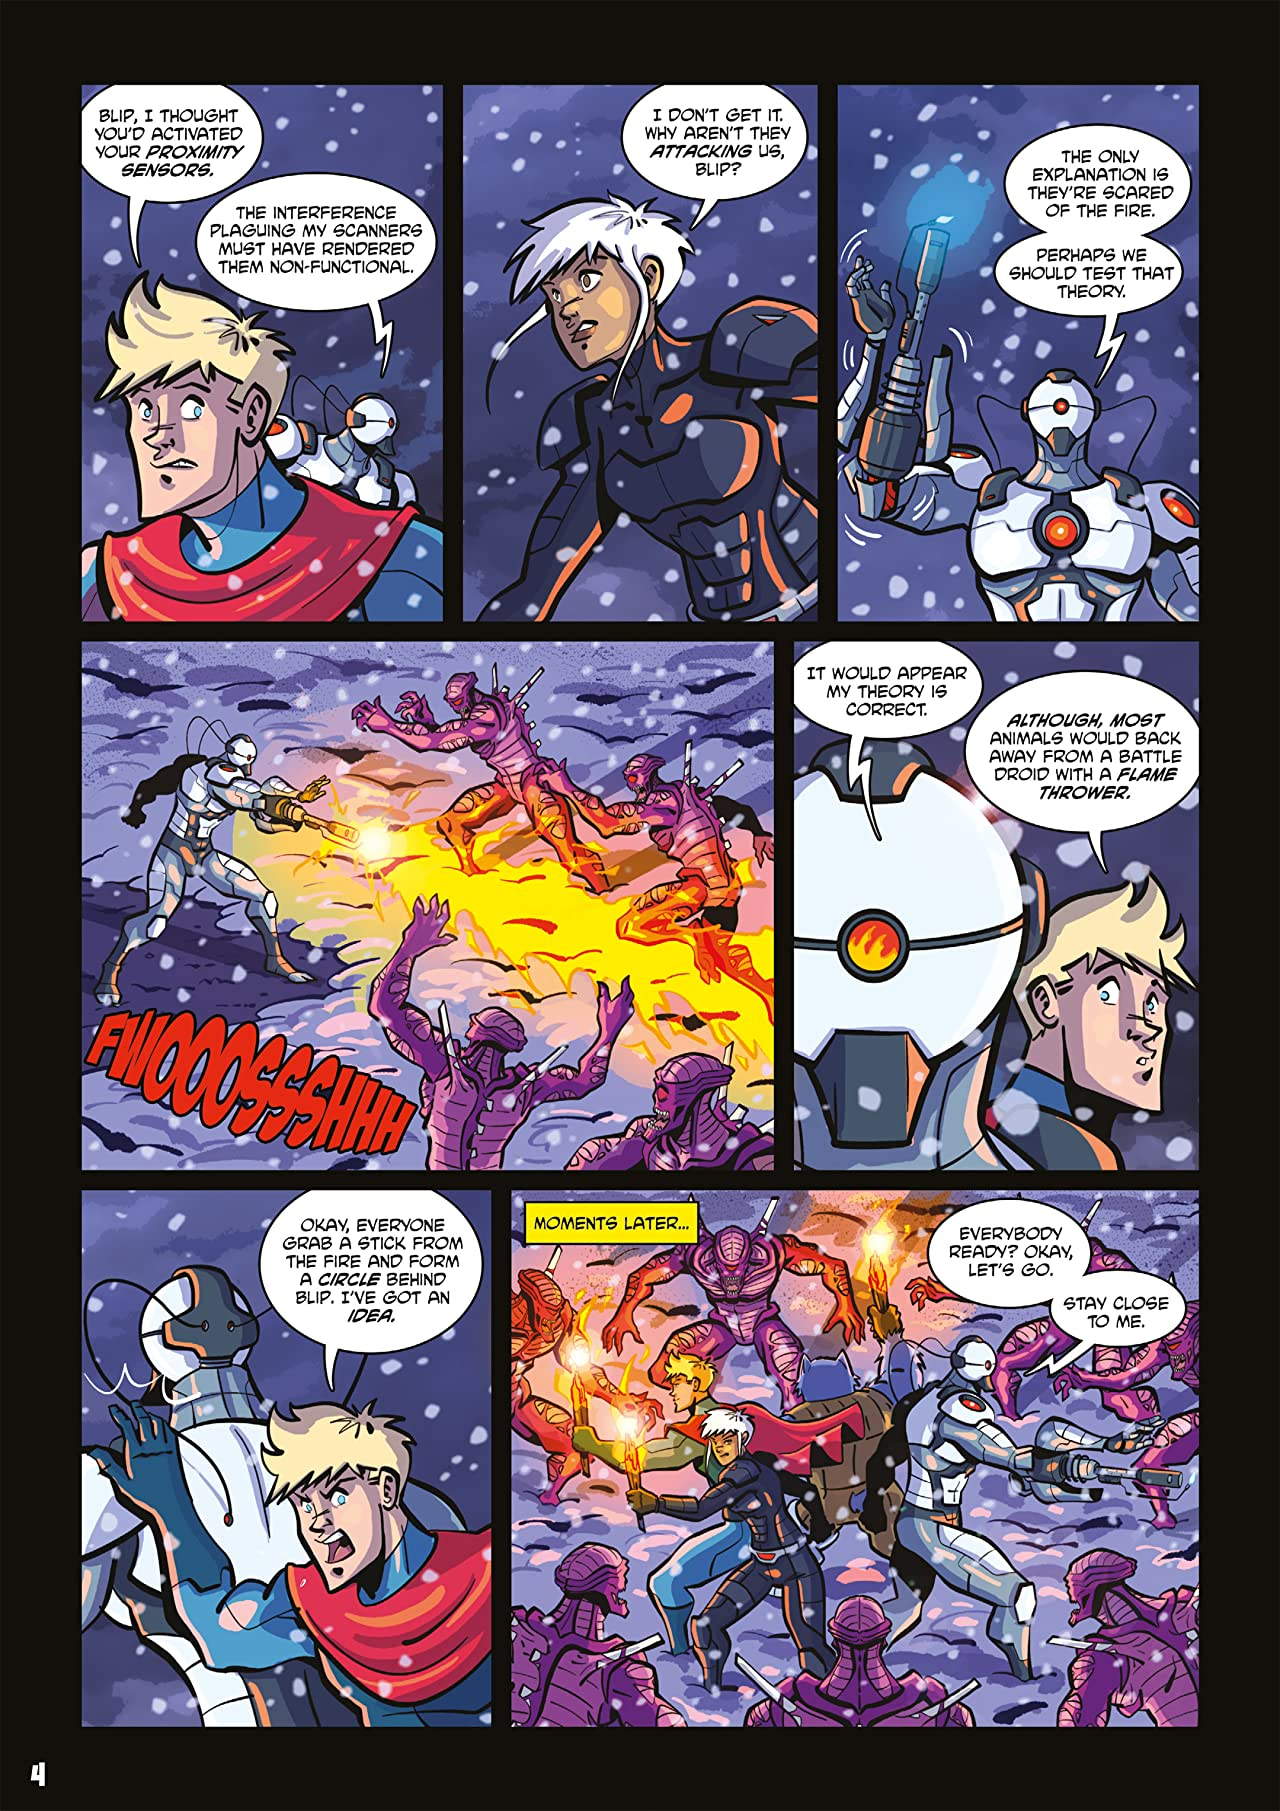 The Phoenix #318: The Weekly Story Comic